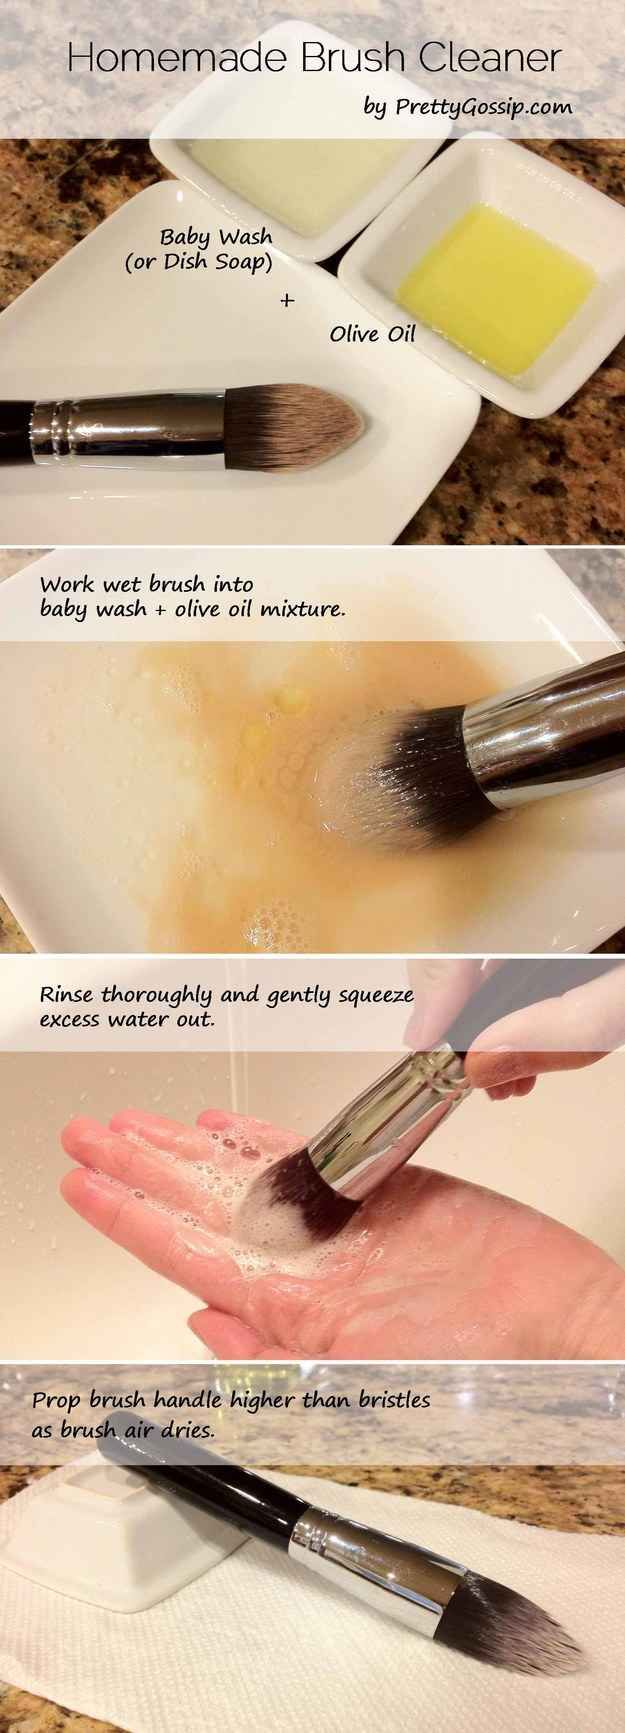 Makeup tool cleaning guide: Swirl your makeup brushes in a DIY mixture of dish soap and olive oil for a like-new feel.